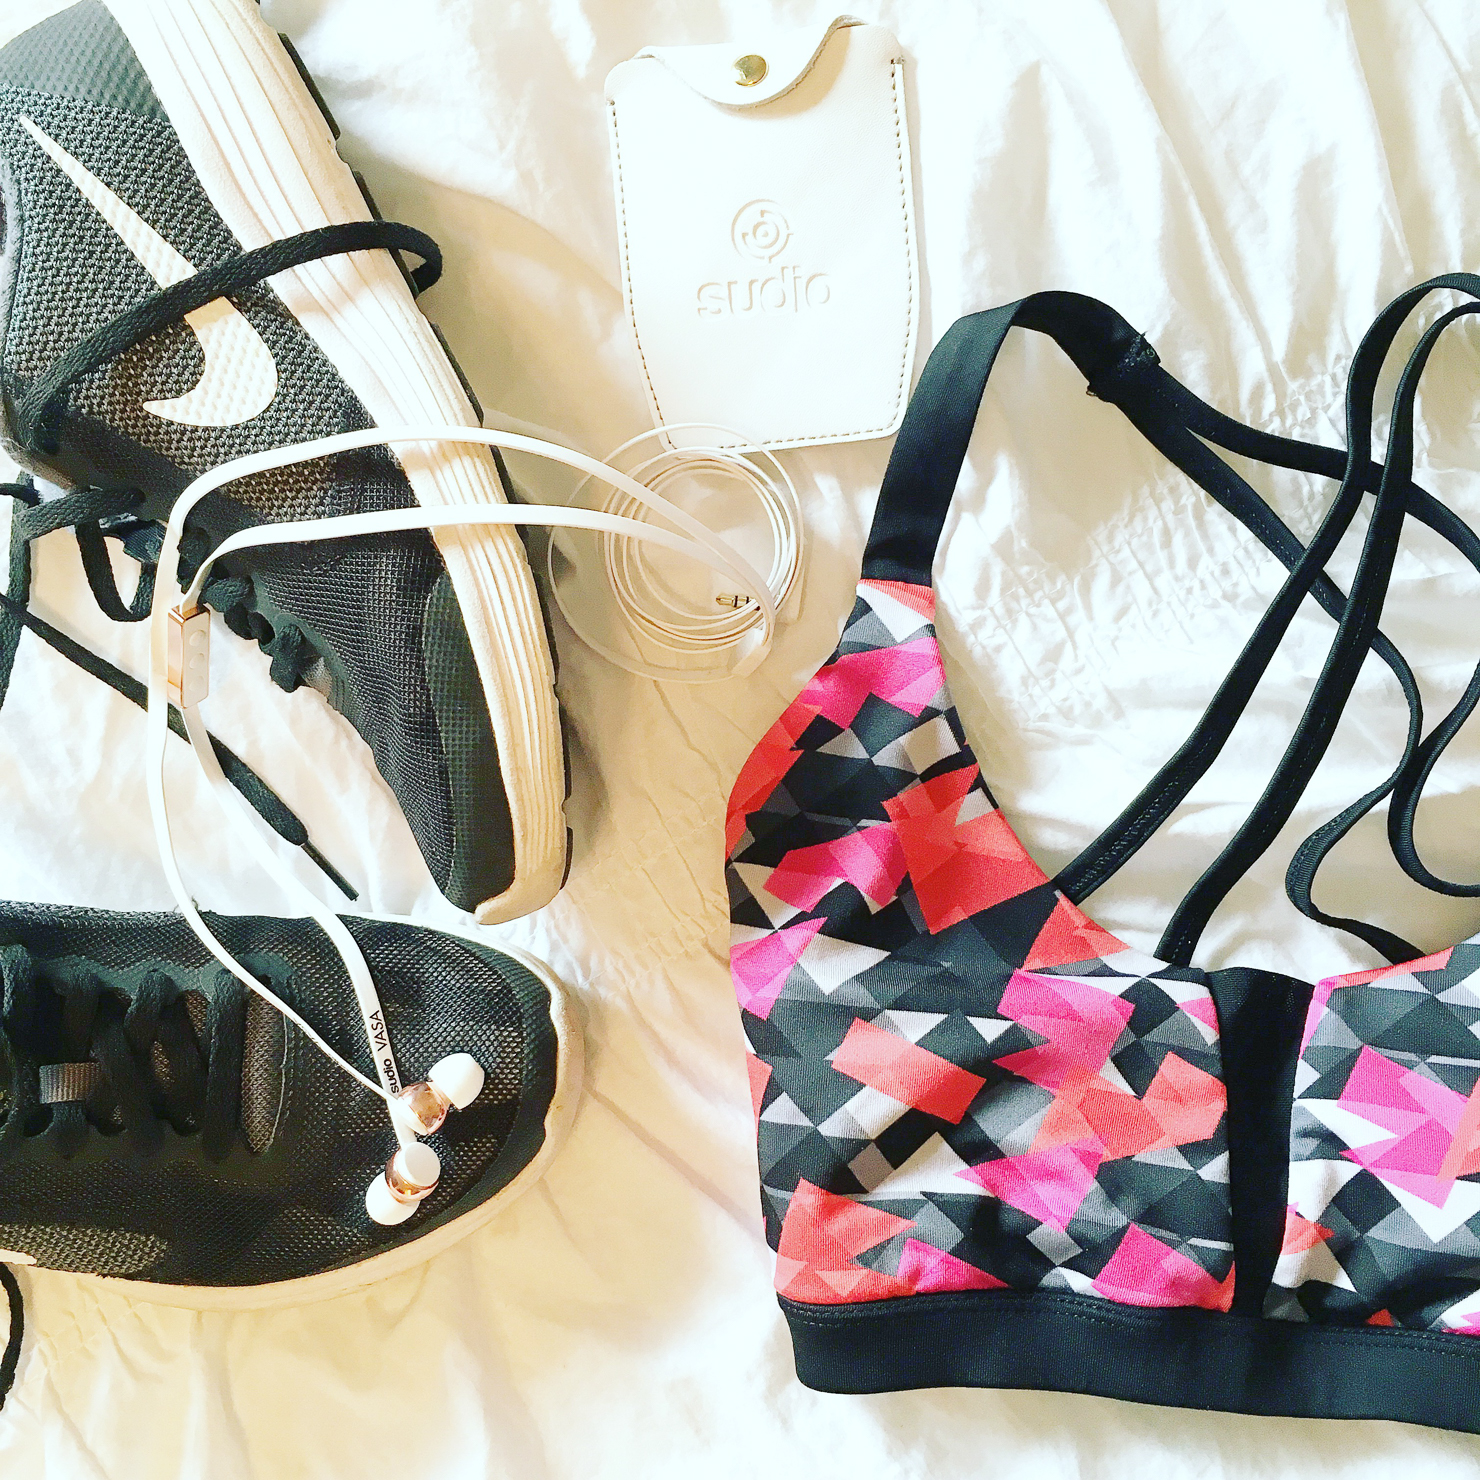 forever 21 sports bra, nike free running shoes, sudio headphones